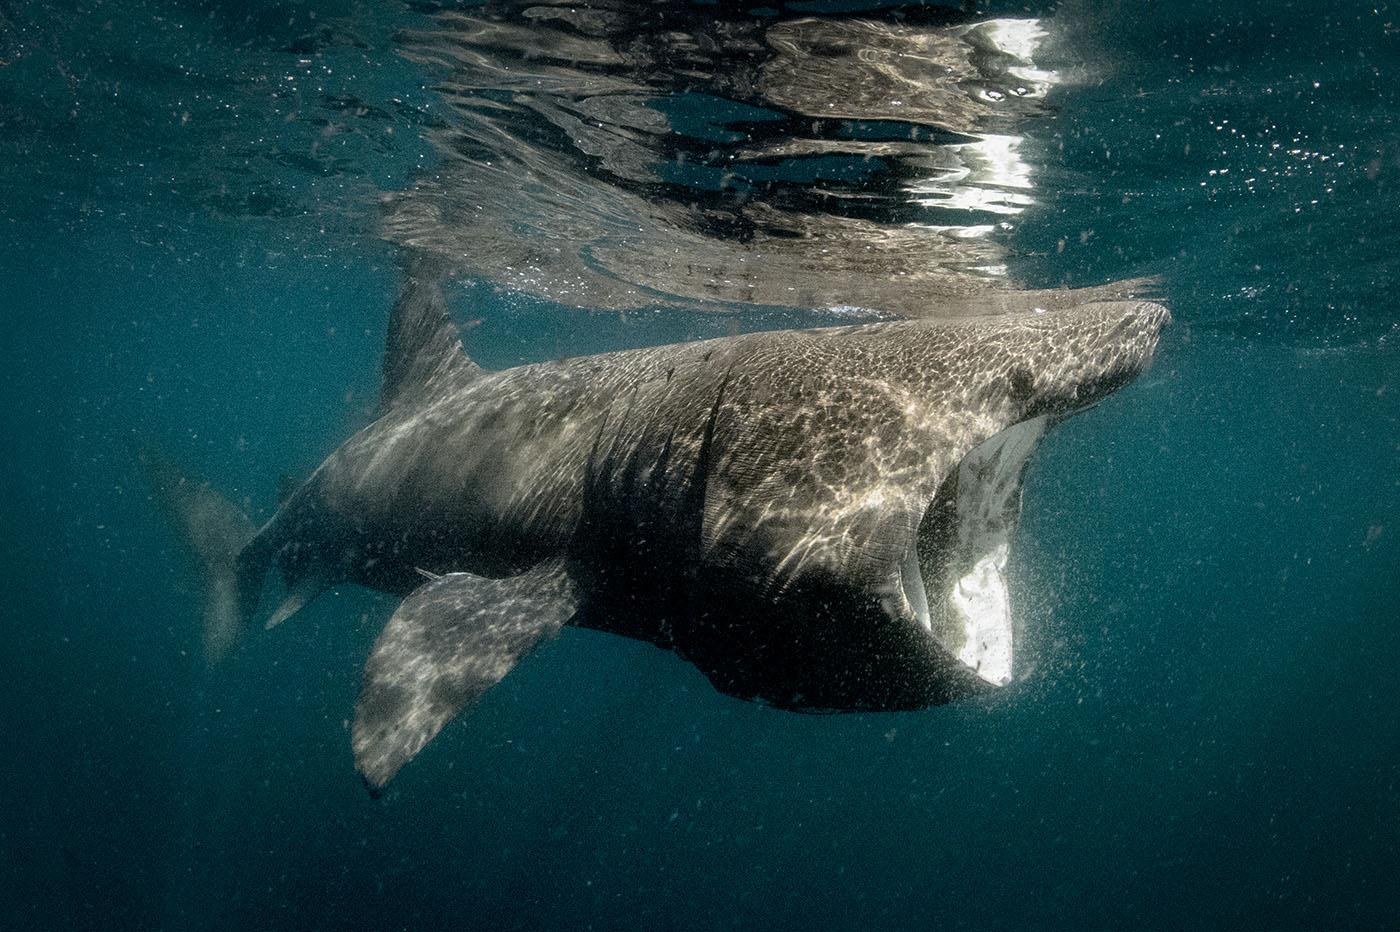 A basking shark, the second largest fish in the world. Photo: George Karbus